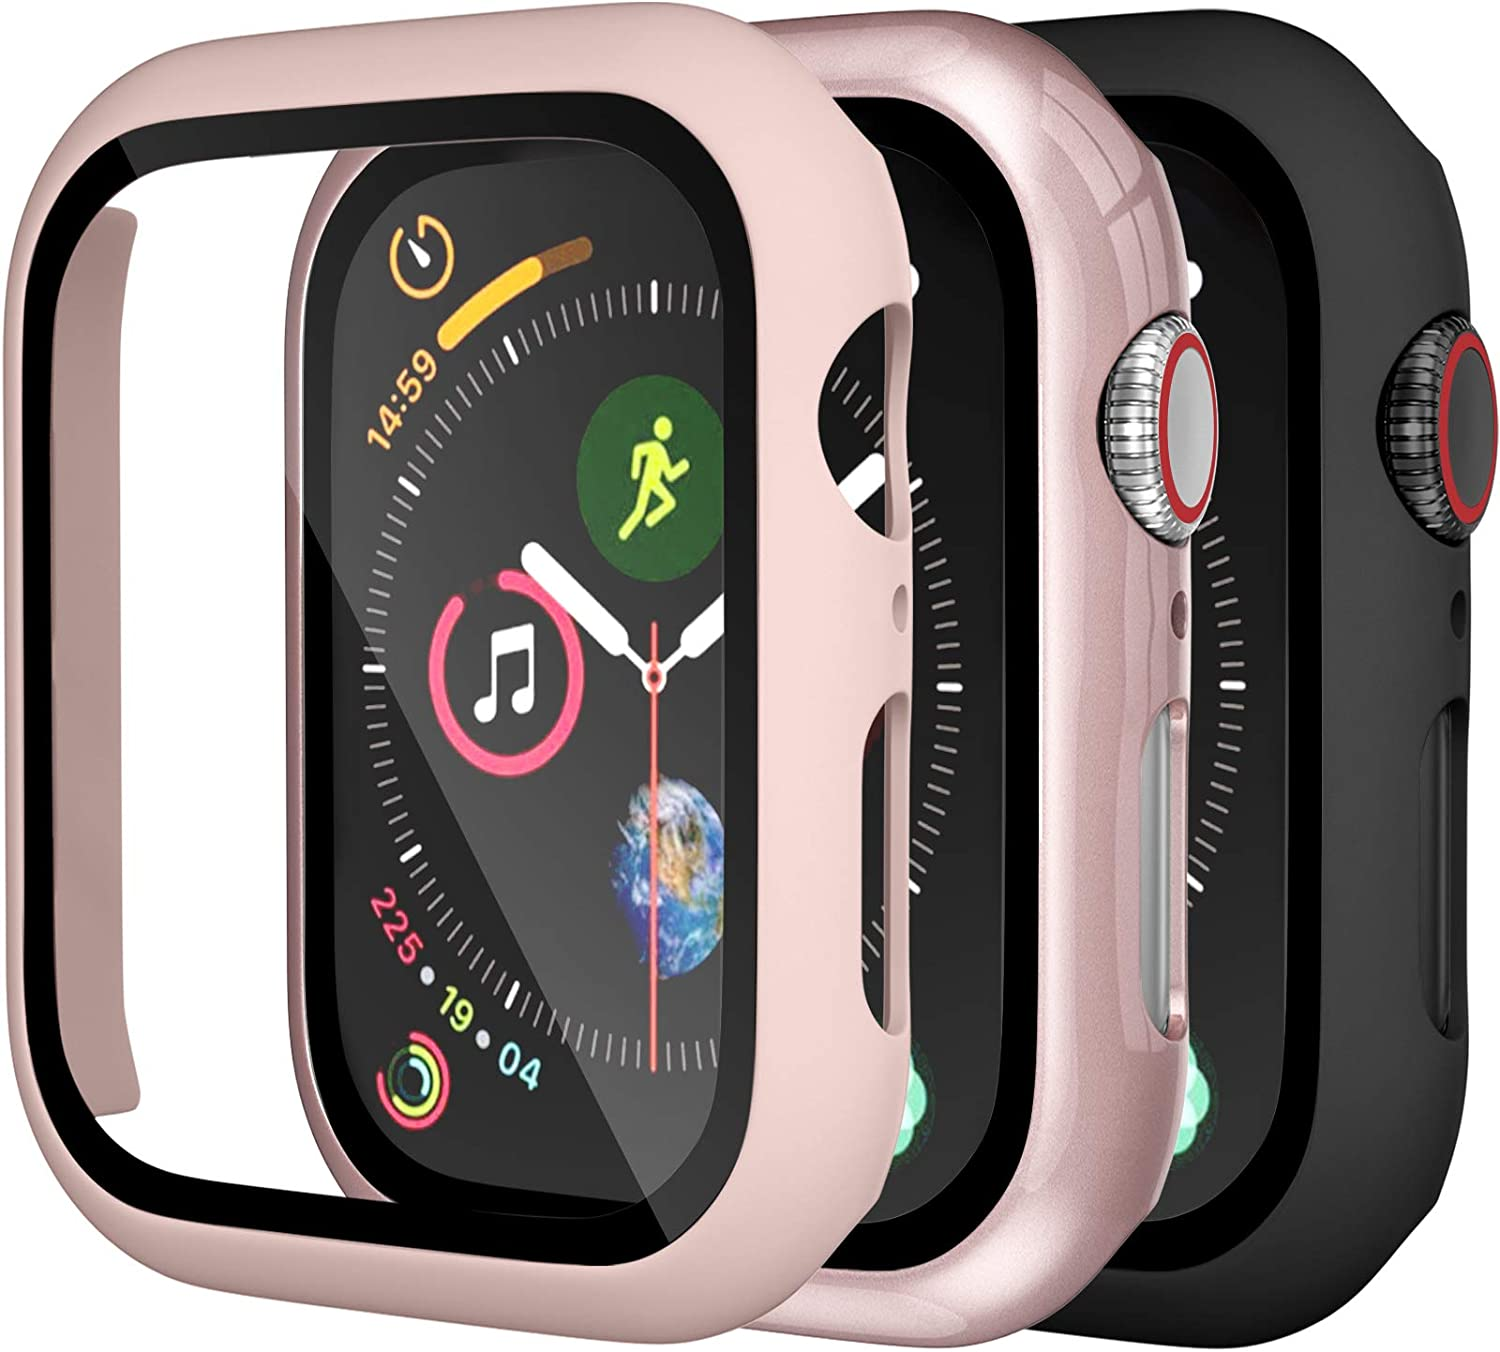 [3 Pack] Charlam Compatible with Apple Watch Case 40mm, Full Coverage Bumper Protective Case Scratch Resistant Cover with Screen Protector for iWatch SE Series 6/5/4, Black Pink Rose Pink, 3 Pack